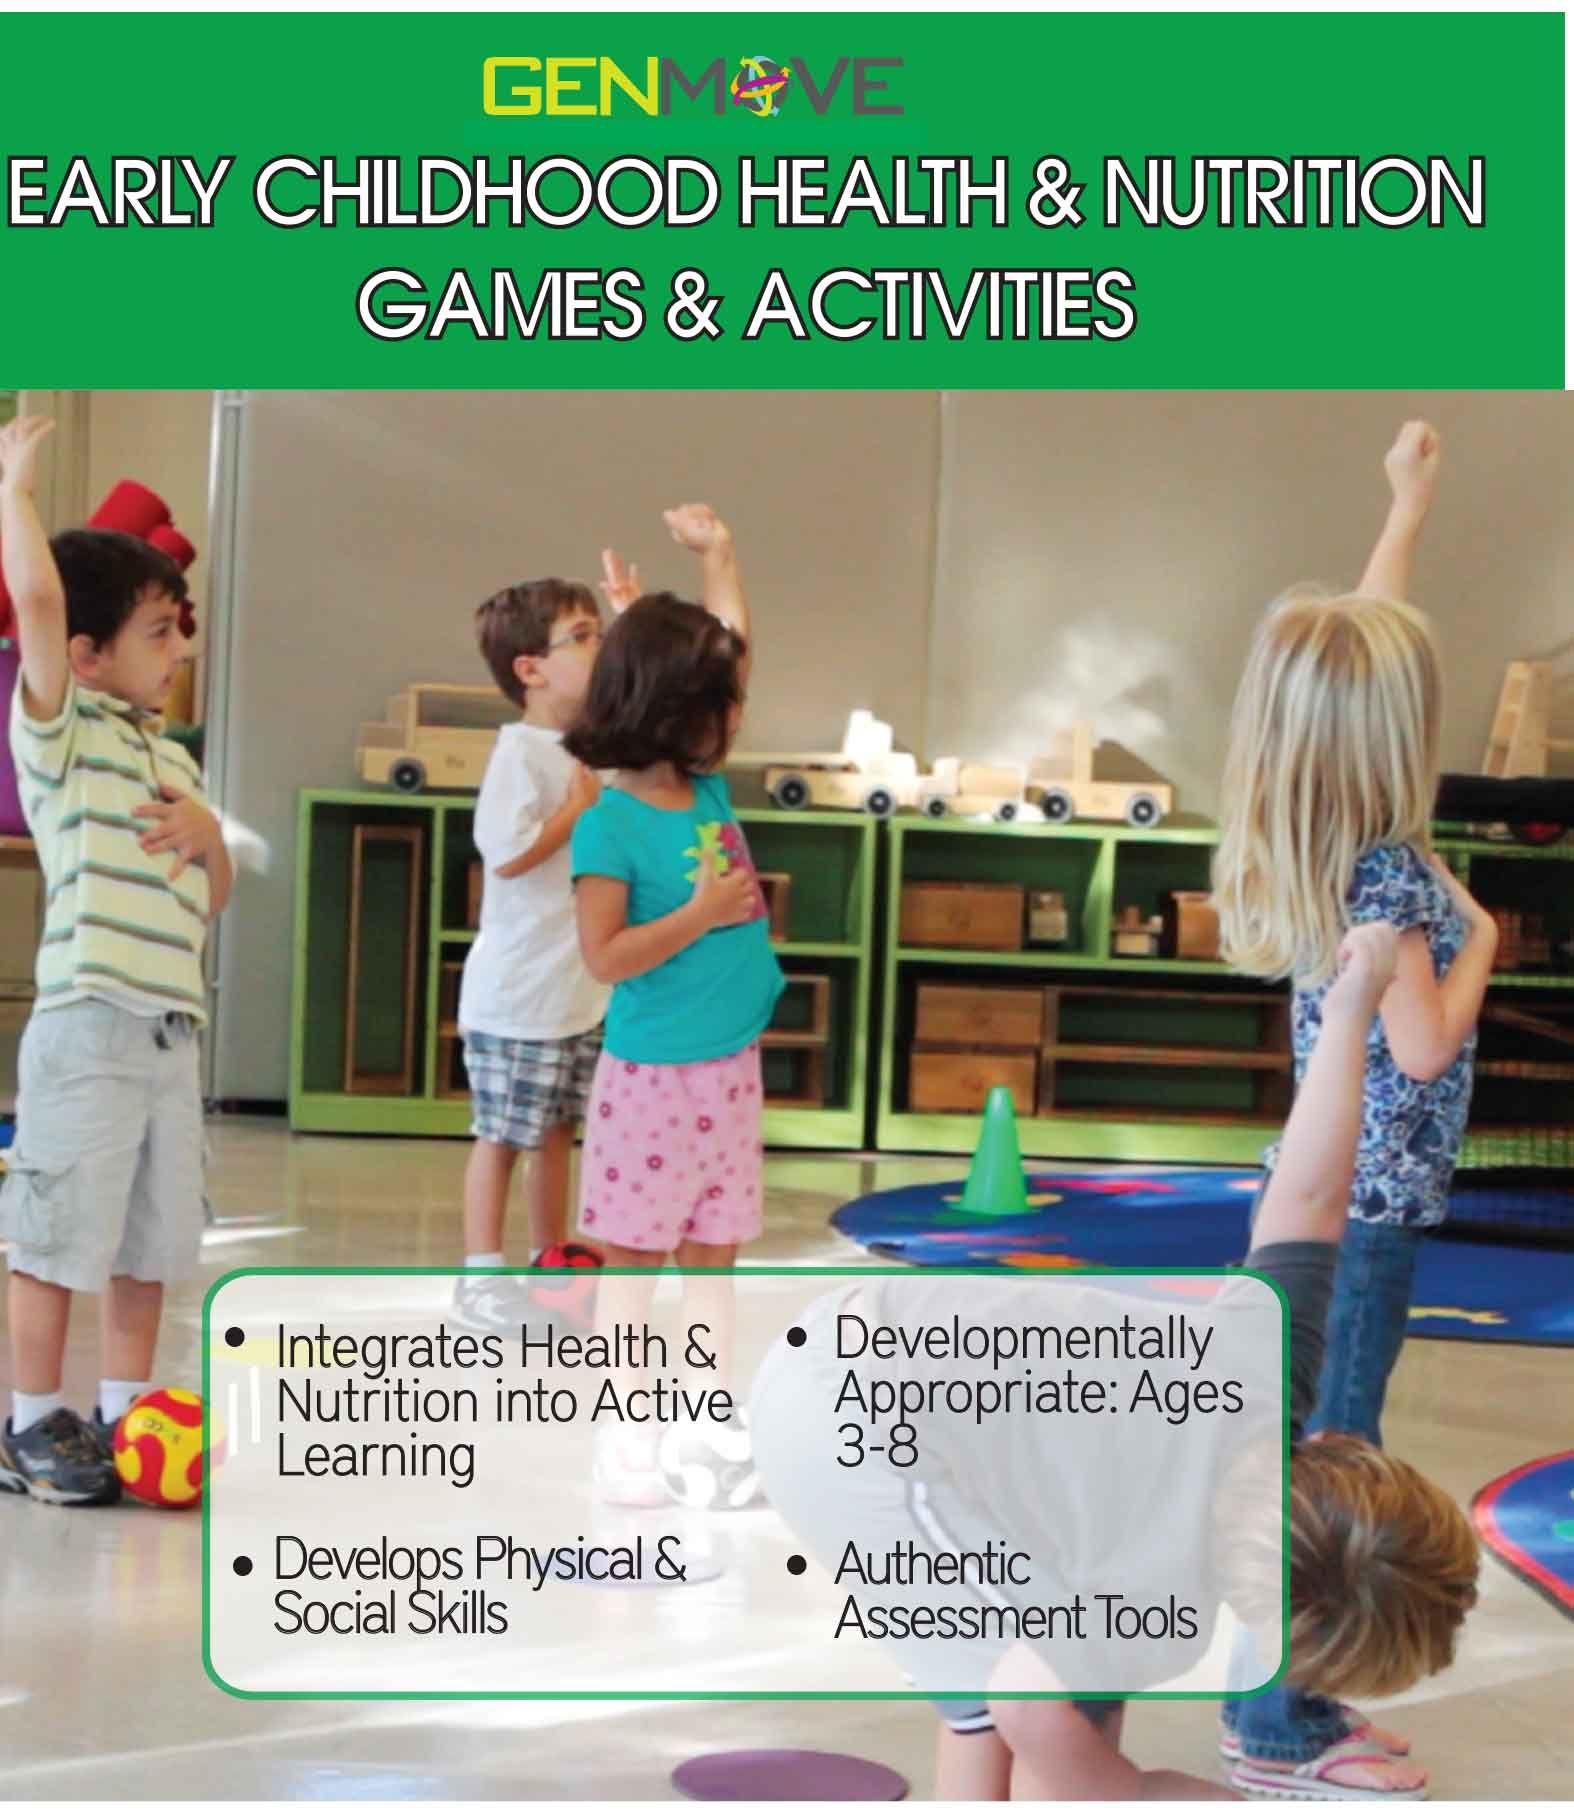 Early Childhood Health Amp Nutrition Games Amp Activities Book Start Teaching Health Amp Nutrition